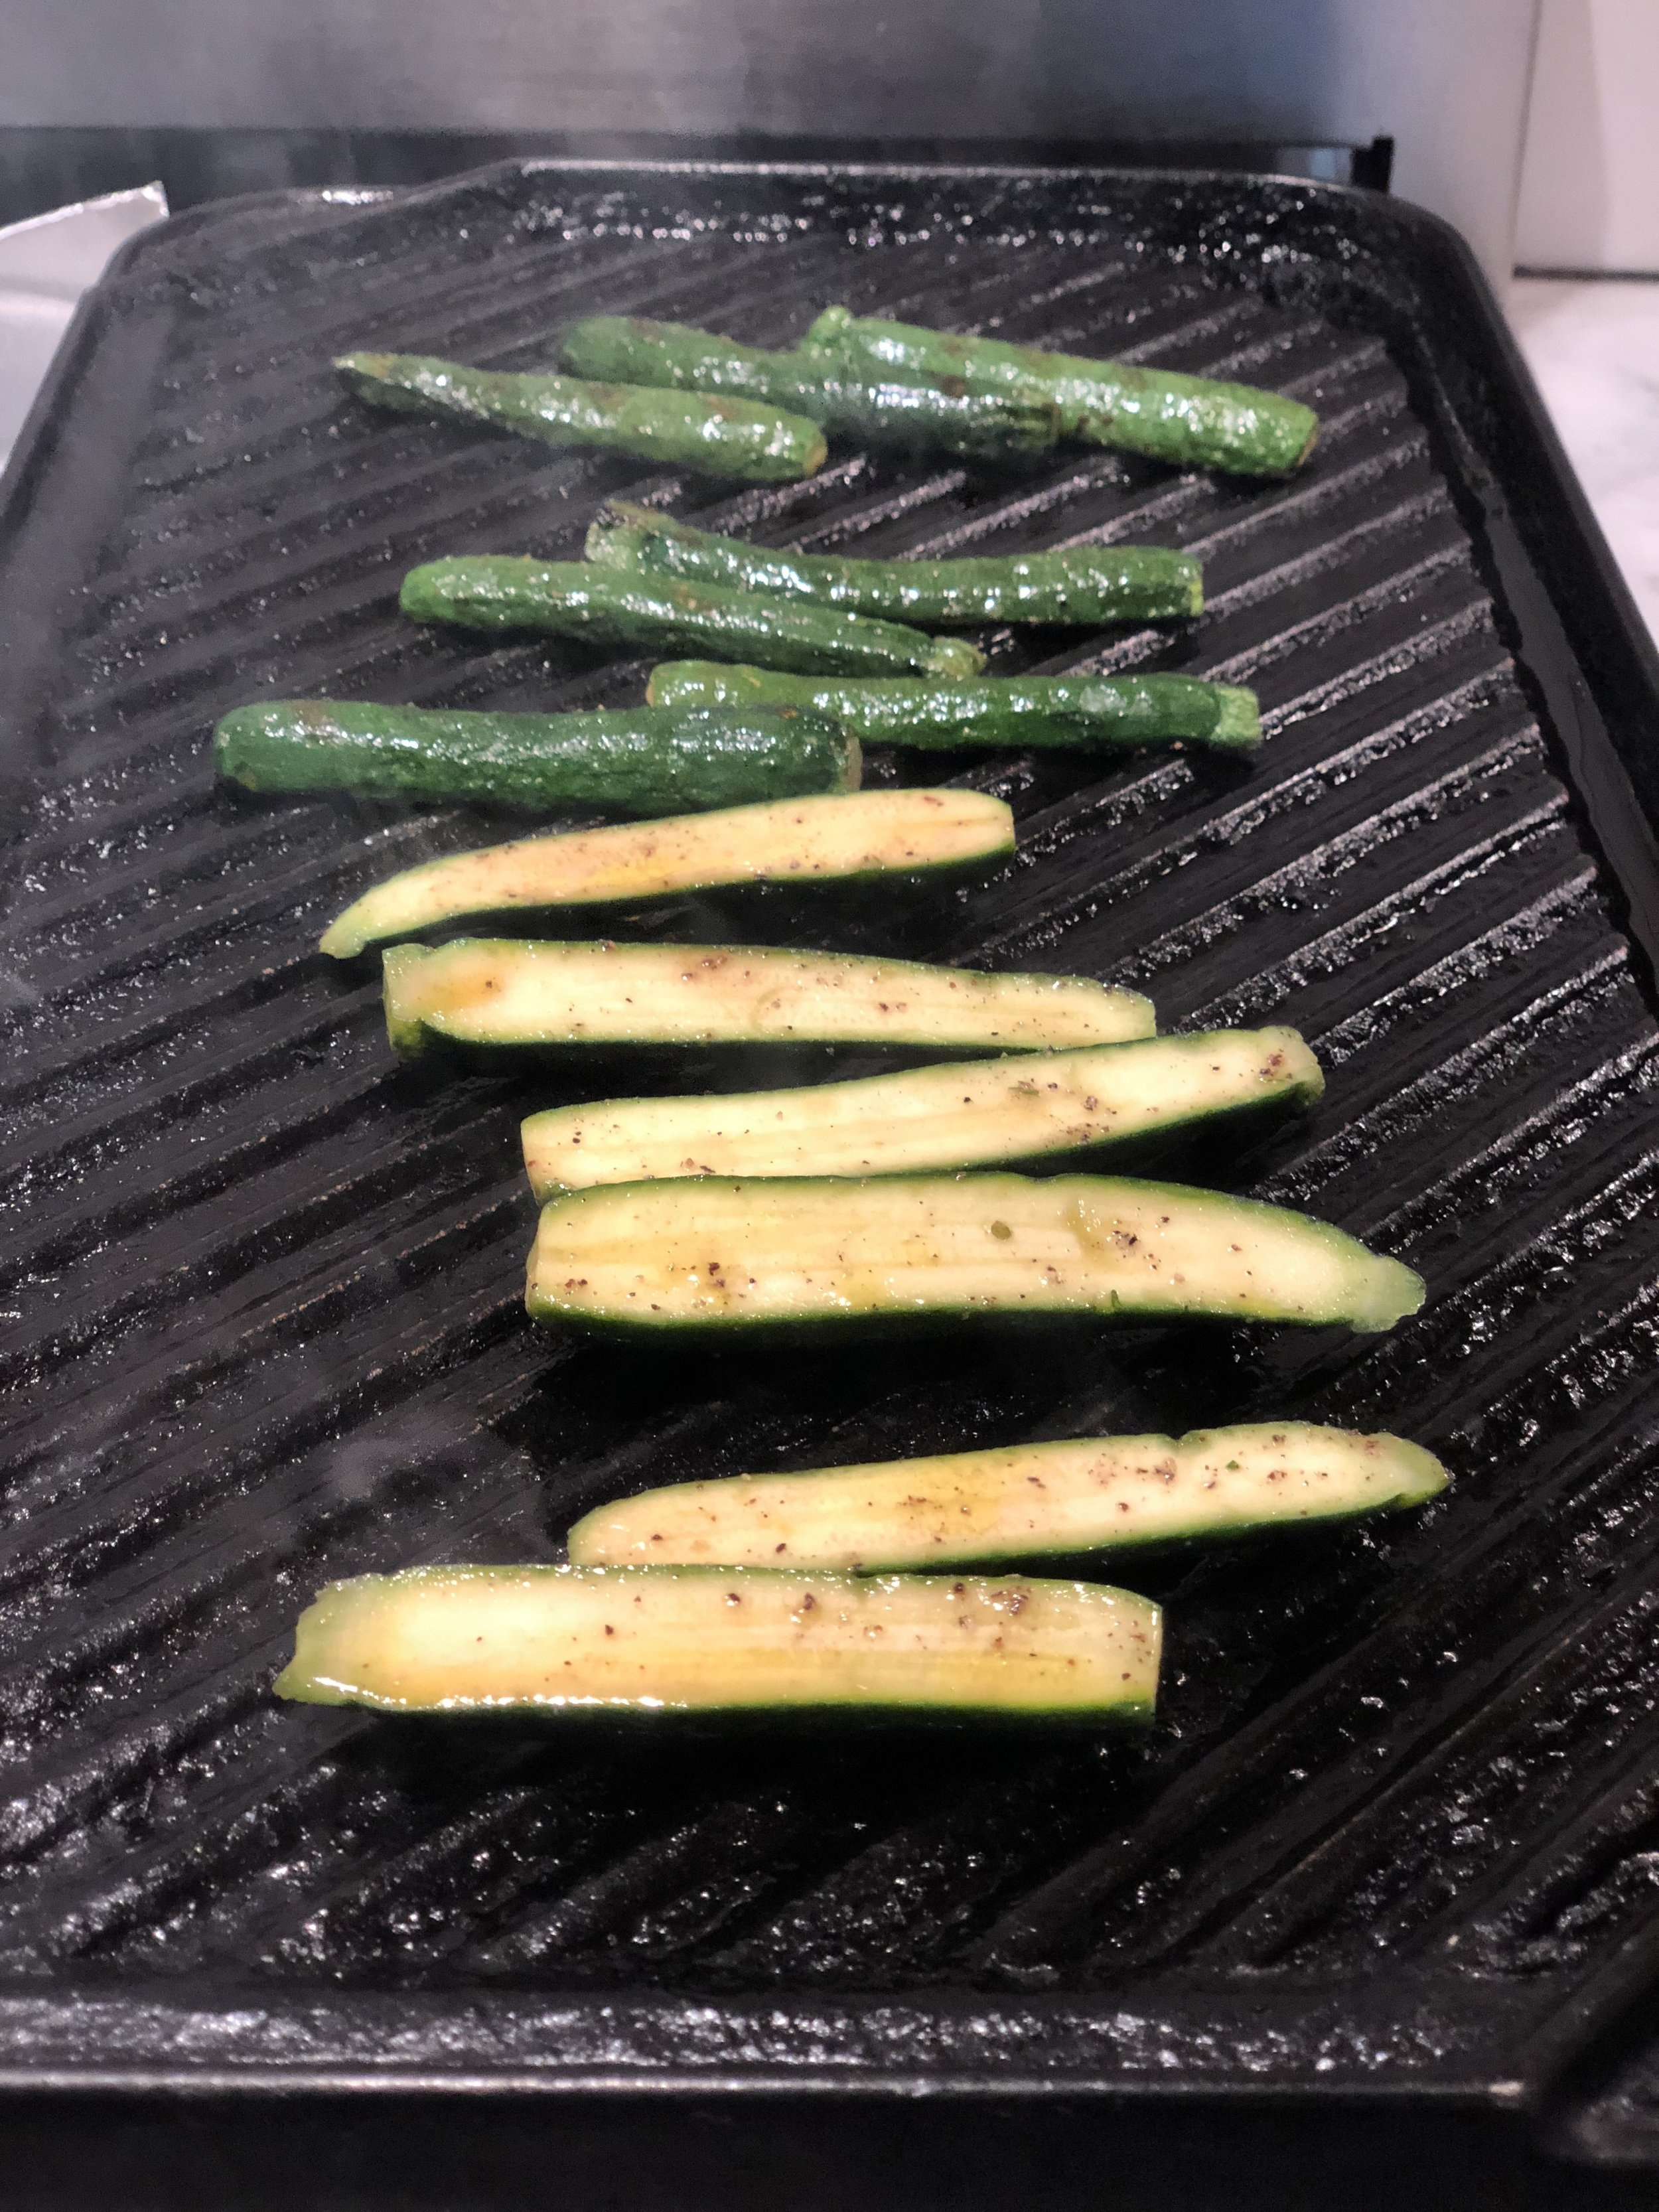 Cut the zucchini in half lengthwise and toss with olive oil and seasoning, place on a hot grill and cook until soft